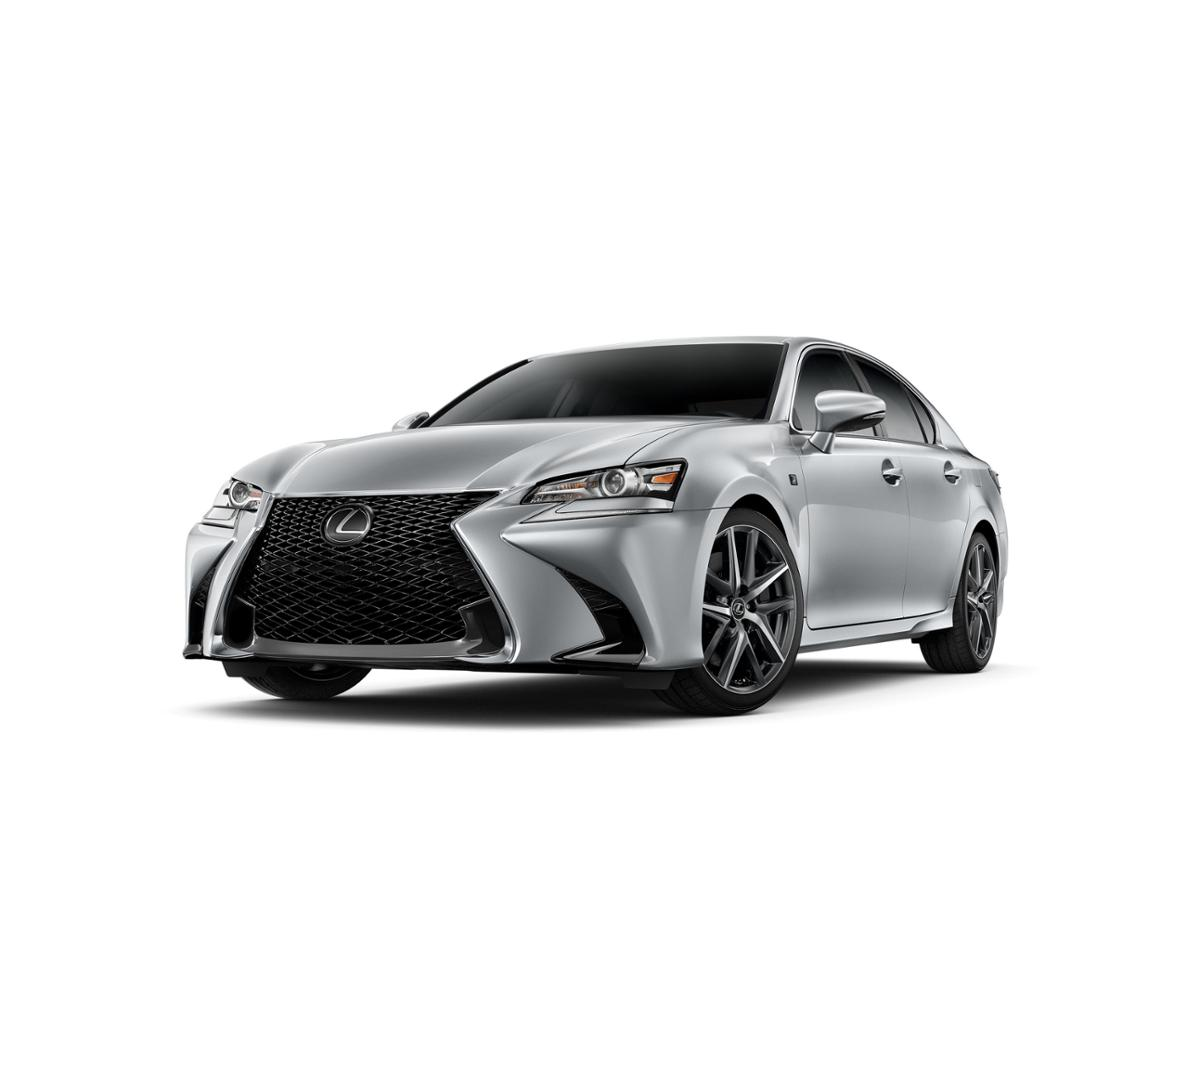 2018 Lexus GS 350 Vehicle Photo in Dallas, TX 75209